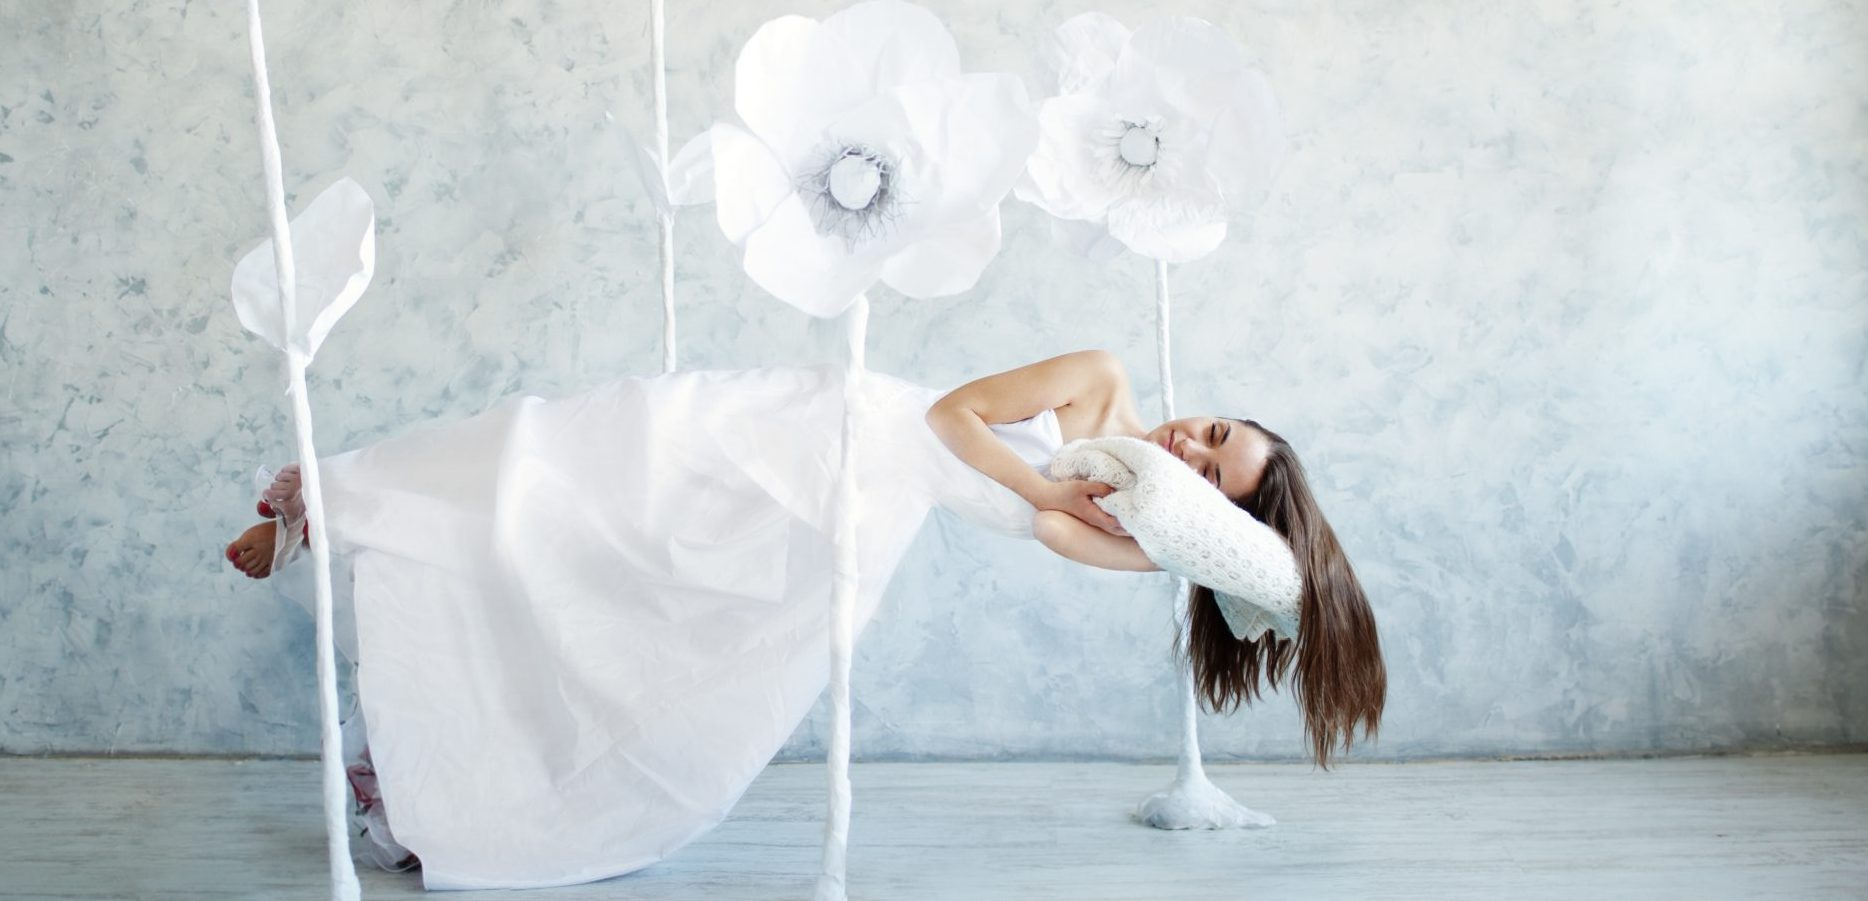 Feel at Home in a Dream World—Learn to Control Your Dreams